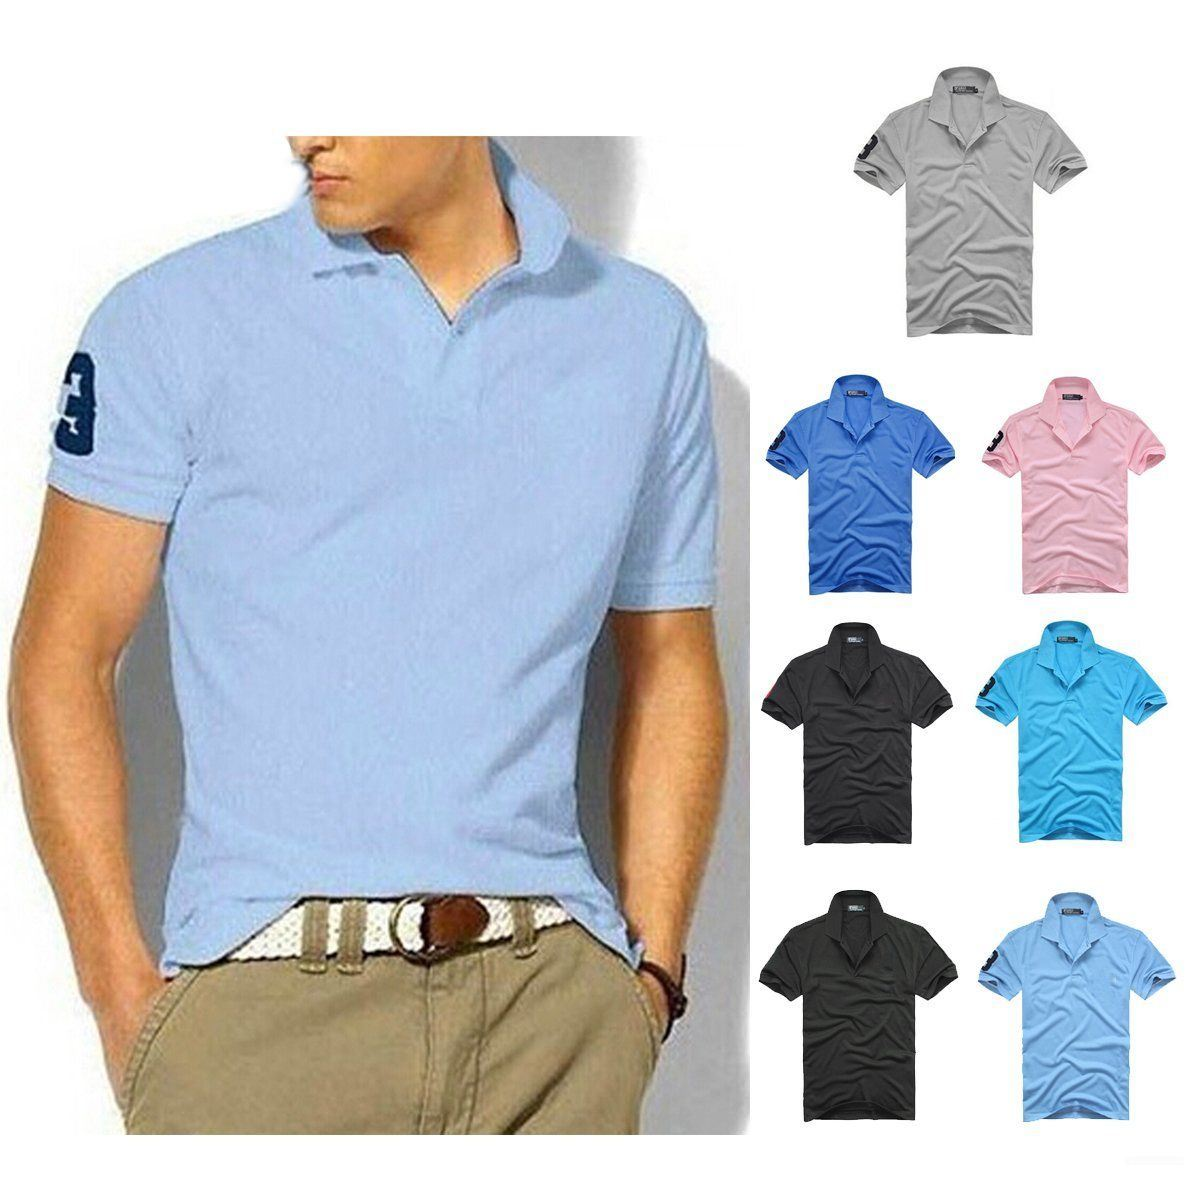 3e3a8a15 Wholesale Polo Shirts - DREAMWORKS